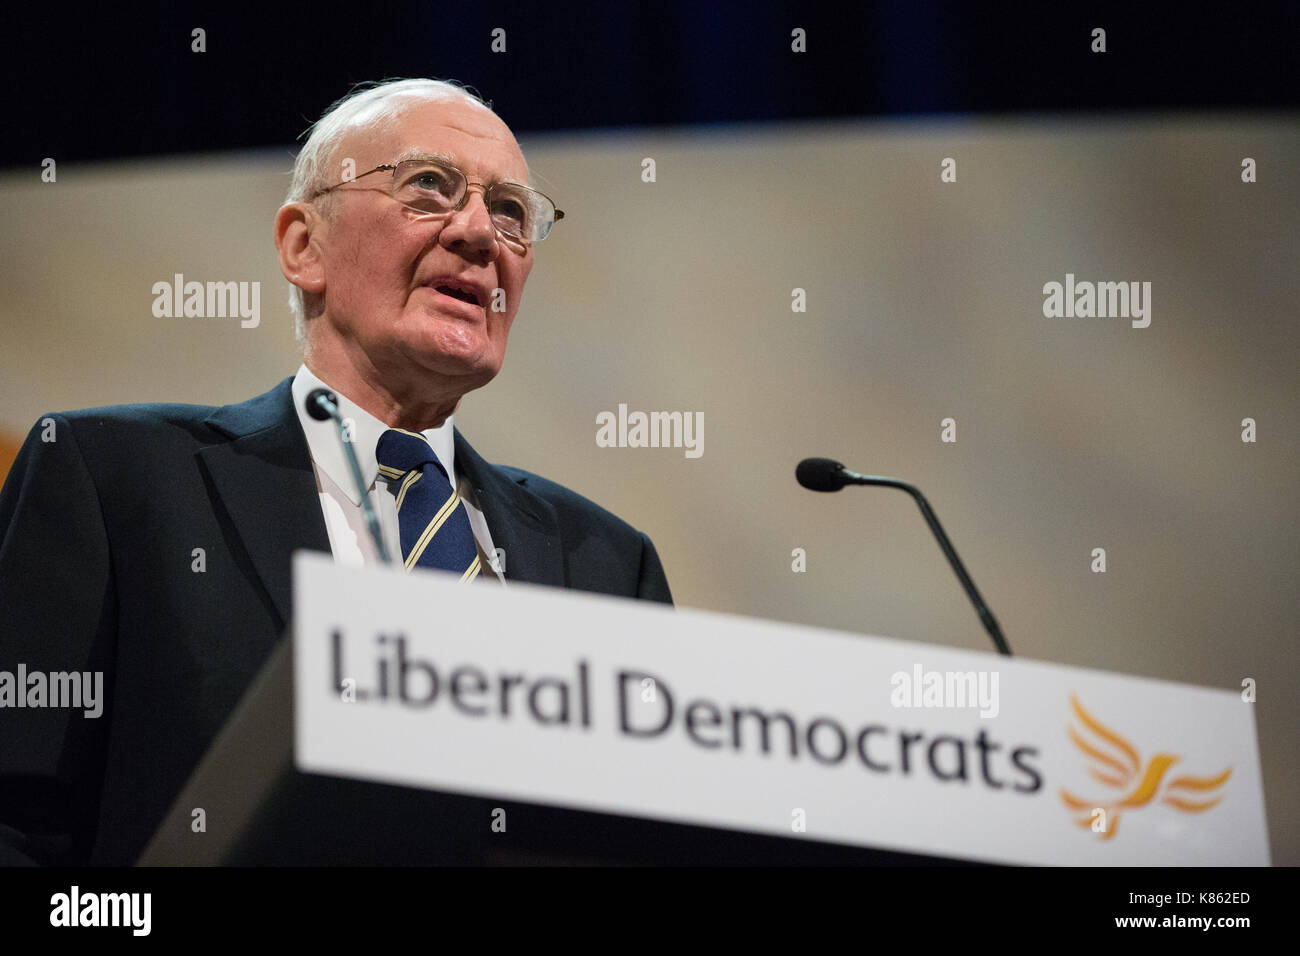 Bournemouth, UK. 17th Sep, 2017. Sir Menzies 'Ming' Campbell speaks during a debate on Liberal Democrat policy on the European Union during the Autumn Conference. Party members passed an amended motion retaining the party's policy of giving the public the final say on the final terms of Brexit in the form of an 'exit from Brexit' referendum and rejected a move to ignore the referendum result and back scrapping Article 50. Credit: Mark Kerrison/Alamy Live News - Stock Image